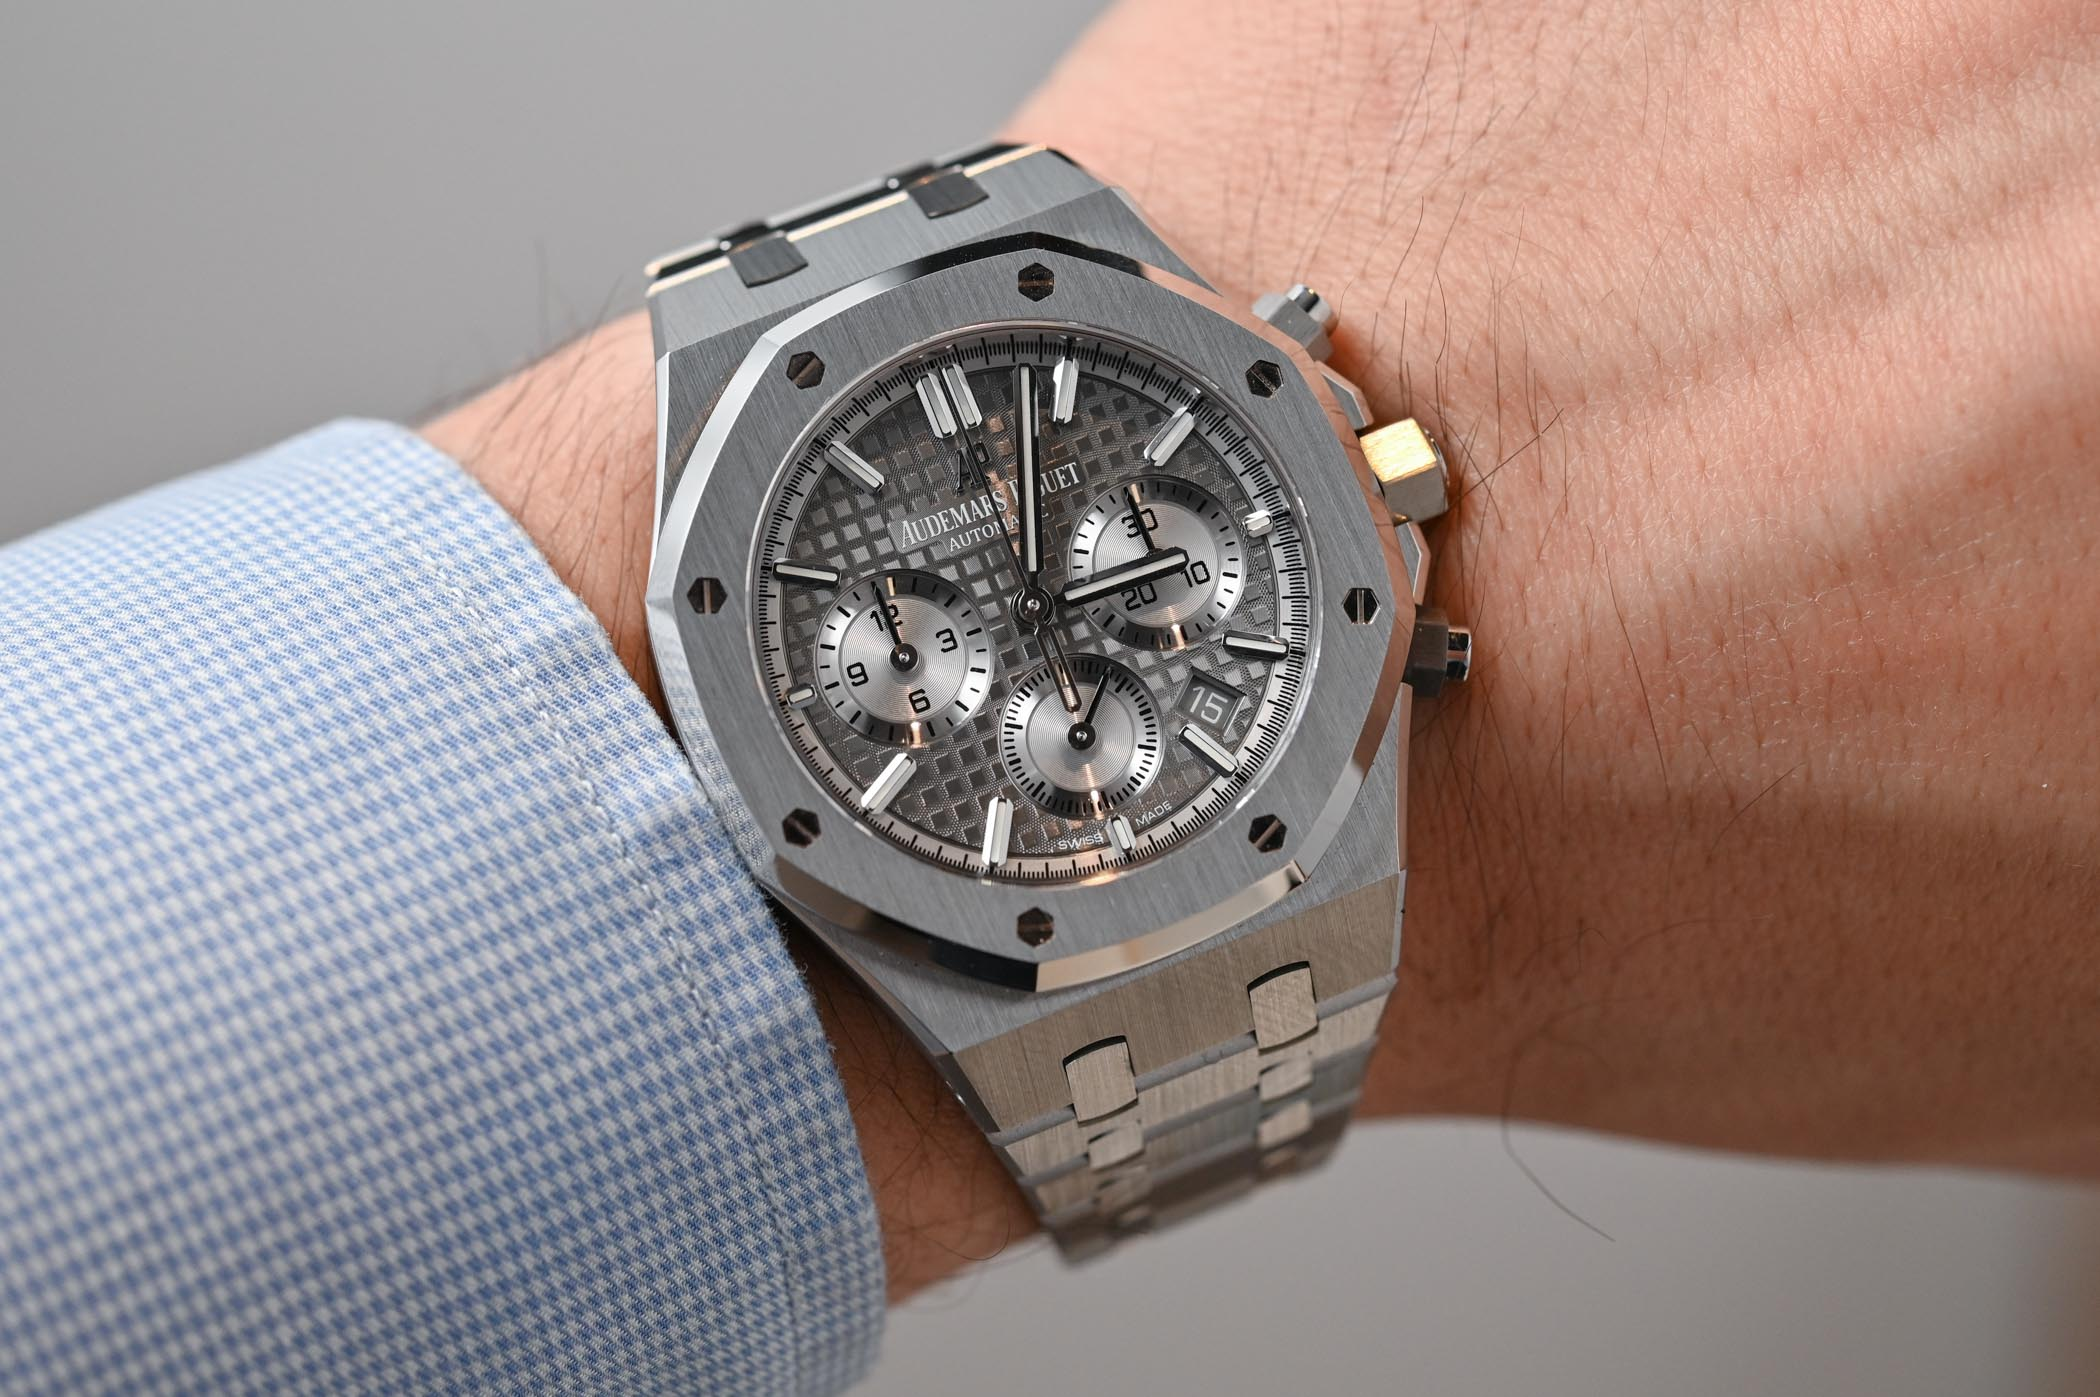 Audemars Piguet Royal Oak Selfwinding Chronograph 38mm ref. 26315